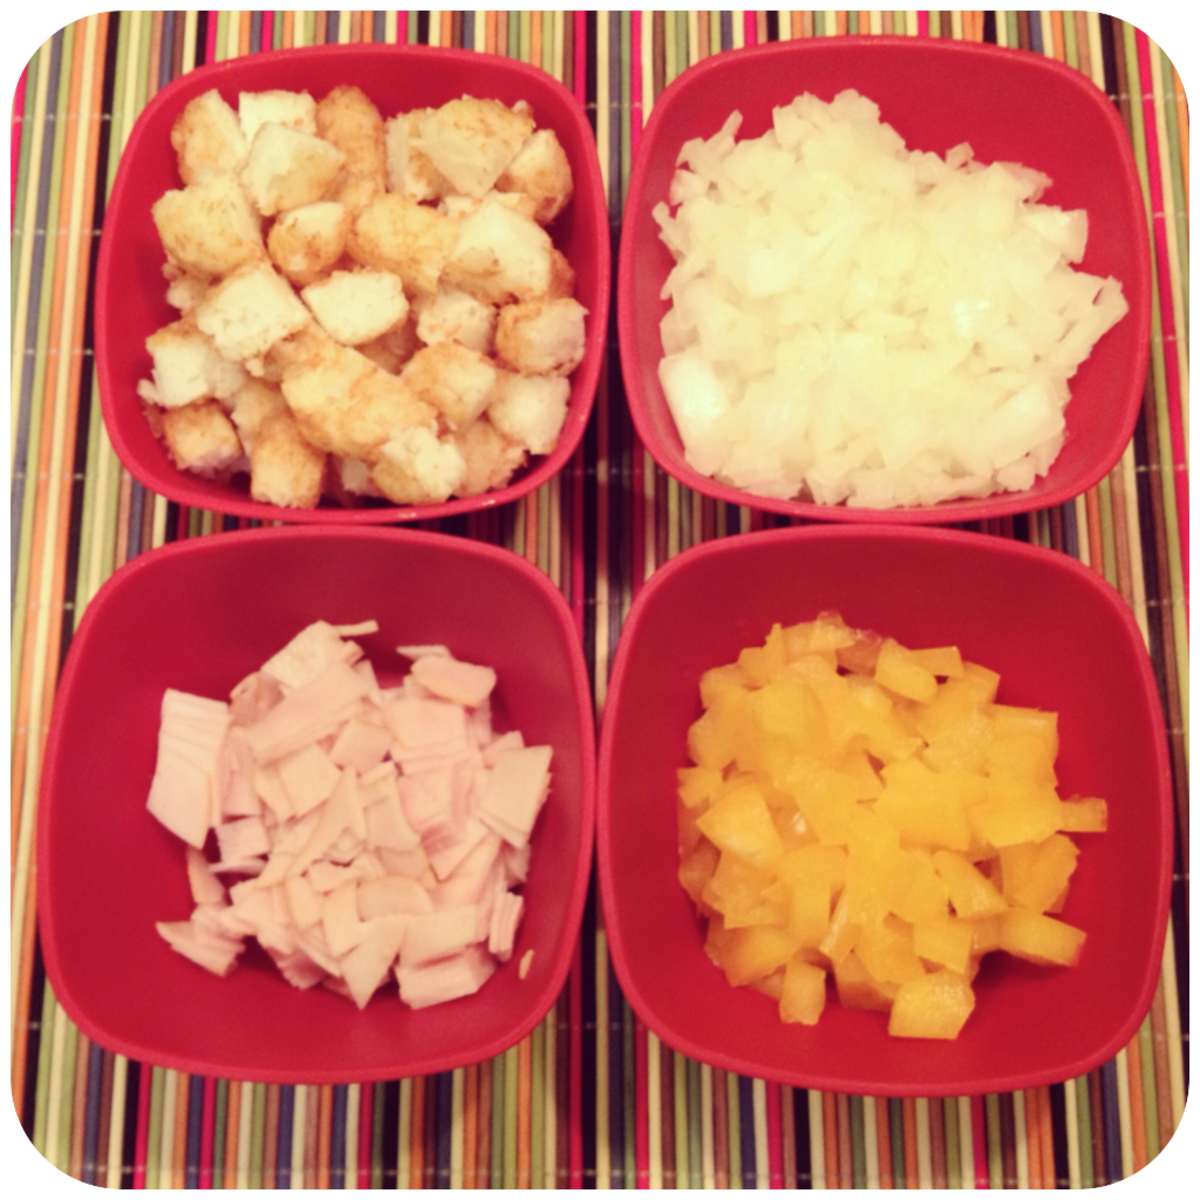 clockwise from top left: frozen tater tots, fresh yellow onion, fresh yellow bell pepper, sliced sandwich turkey,